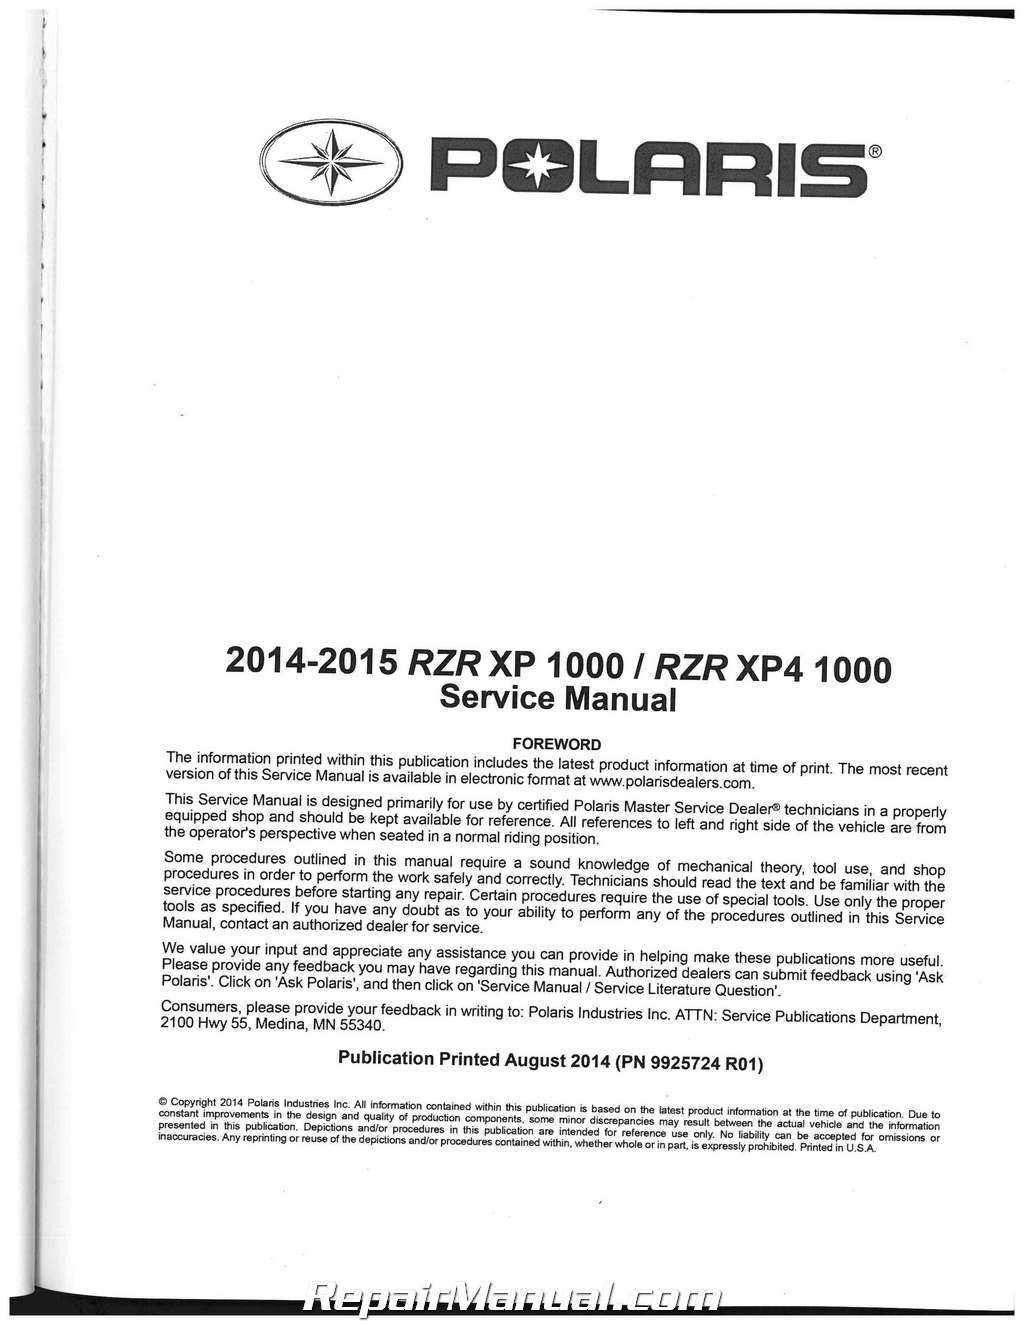 2014 2015 Polaris RZR XP XP4 1000 Service Manual_Page_01 polaris rzr 1000 wiring schematic efcaviation com polaris rzr 1000 wiring schematic at panicattacktreatment.co